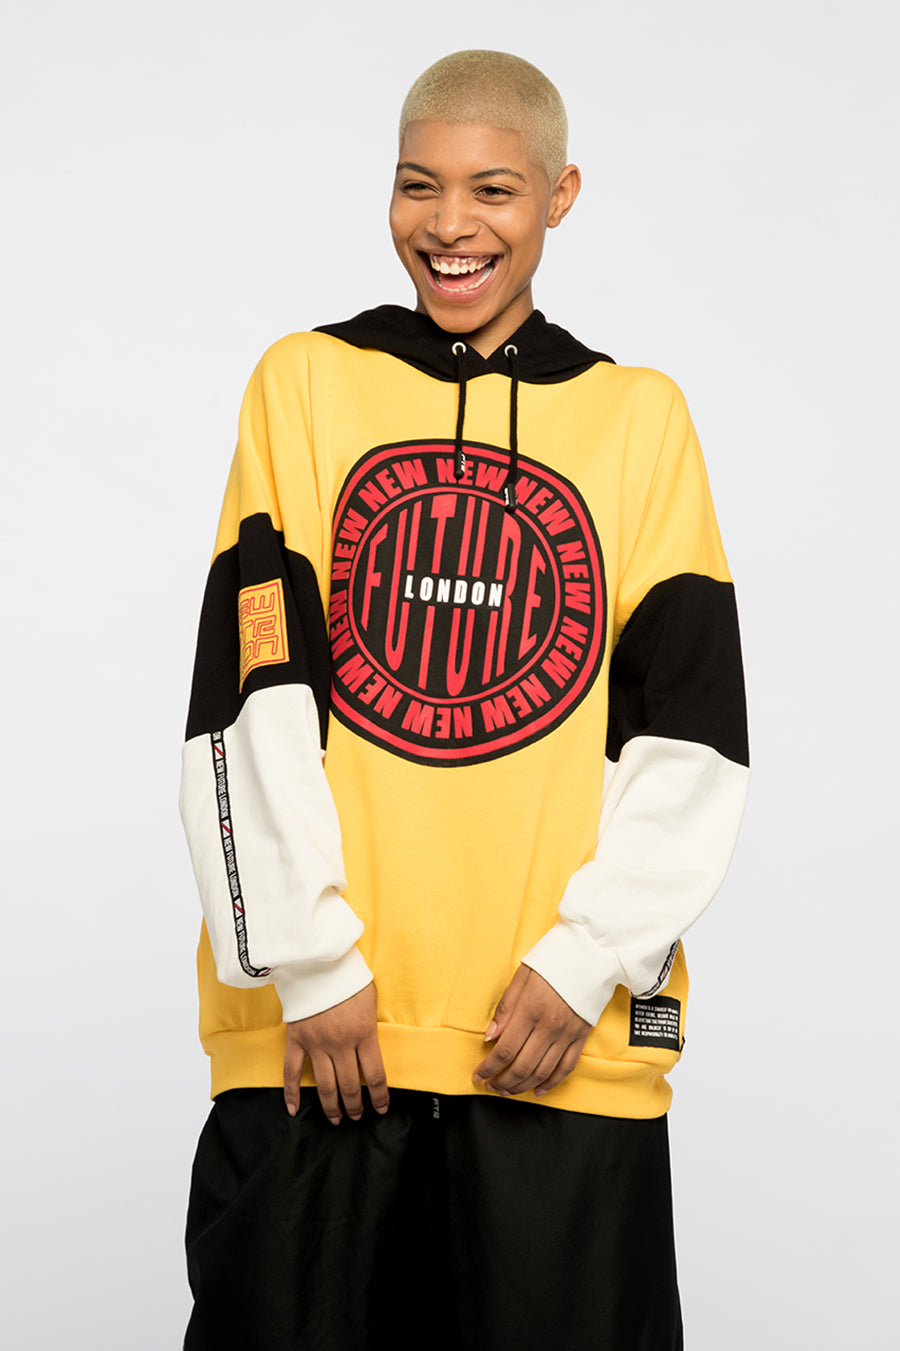 new_future_london_stamp_hooded_sweat_yellow-1.jpg